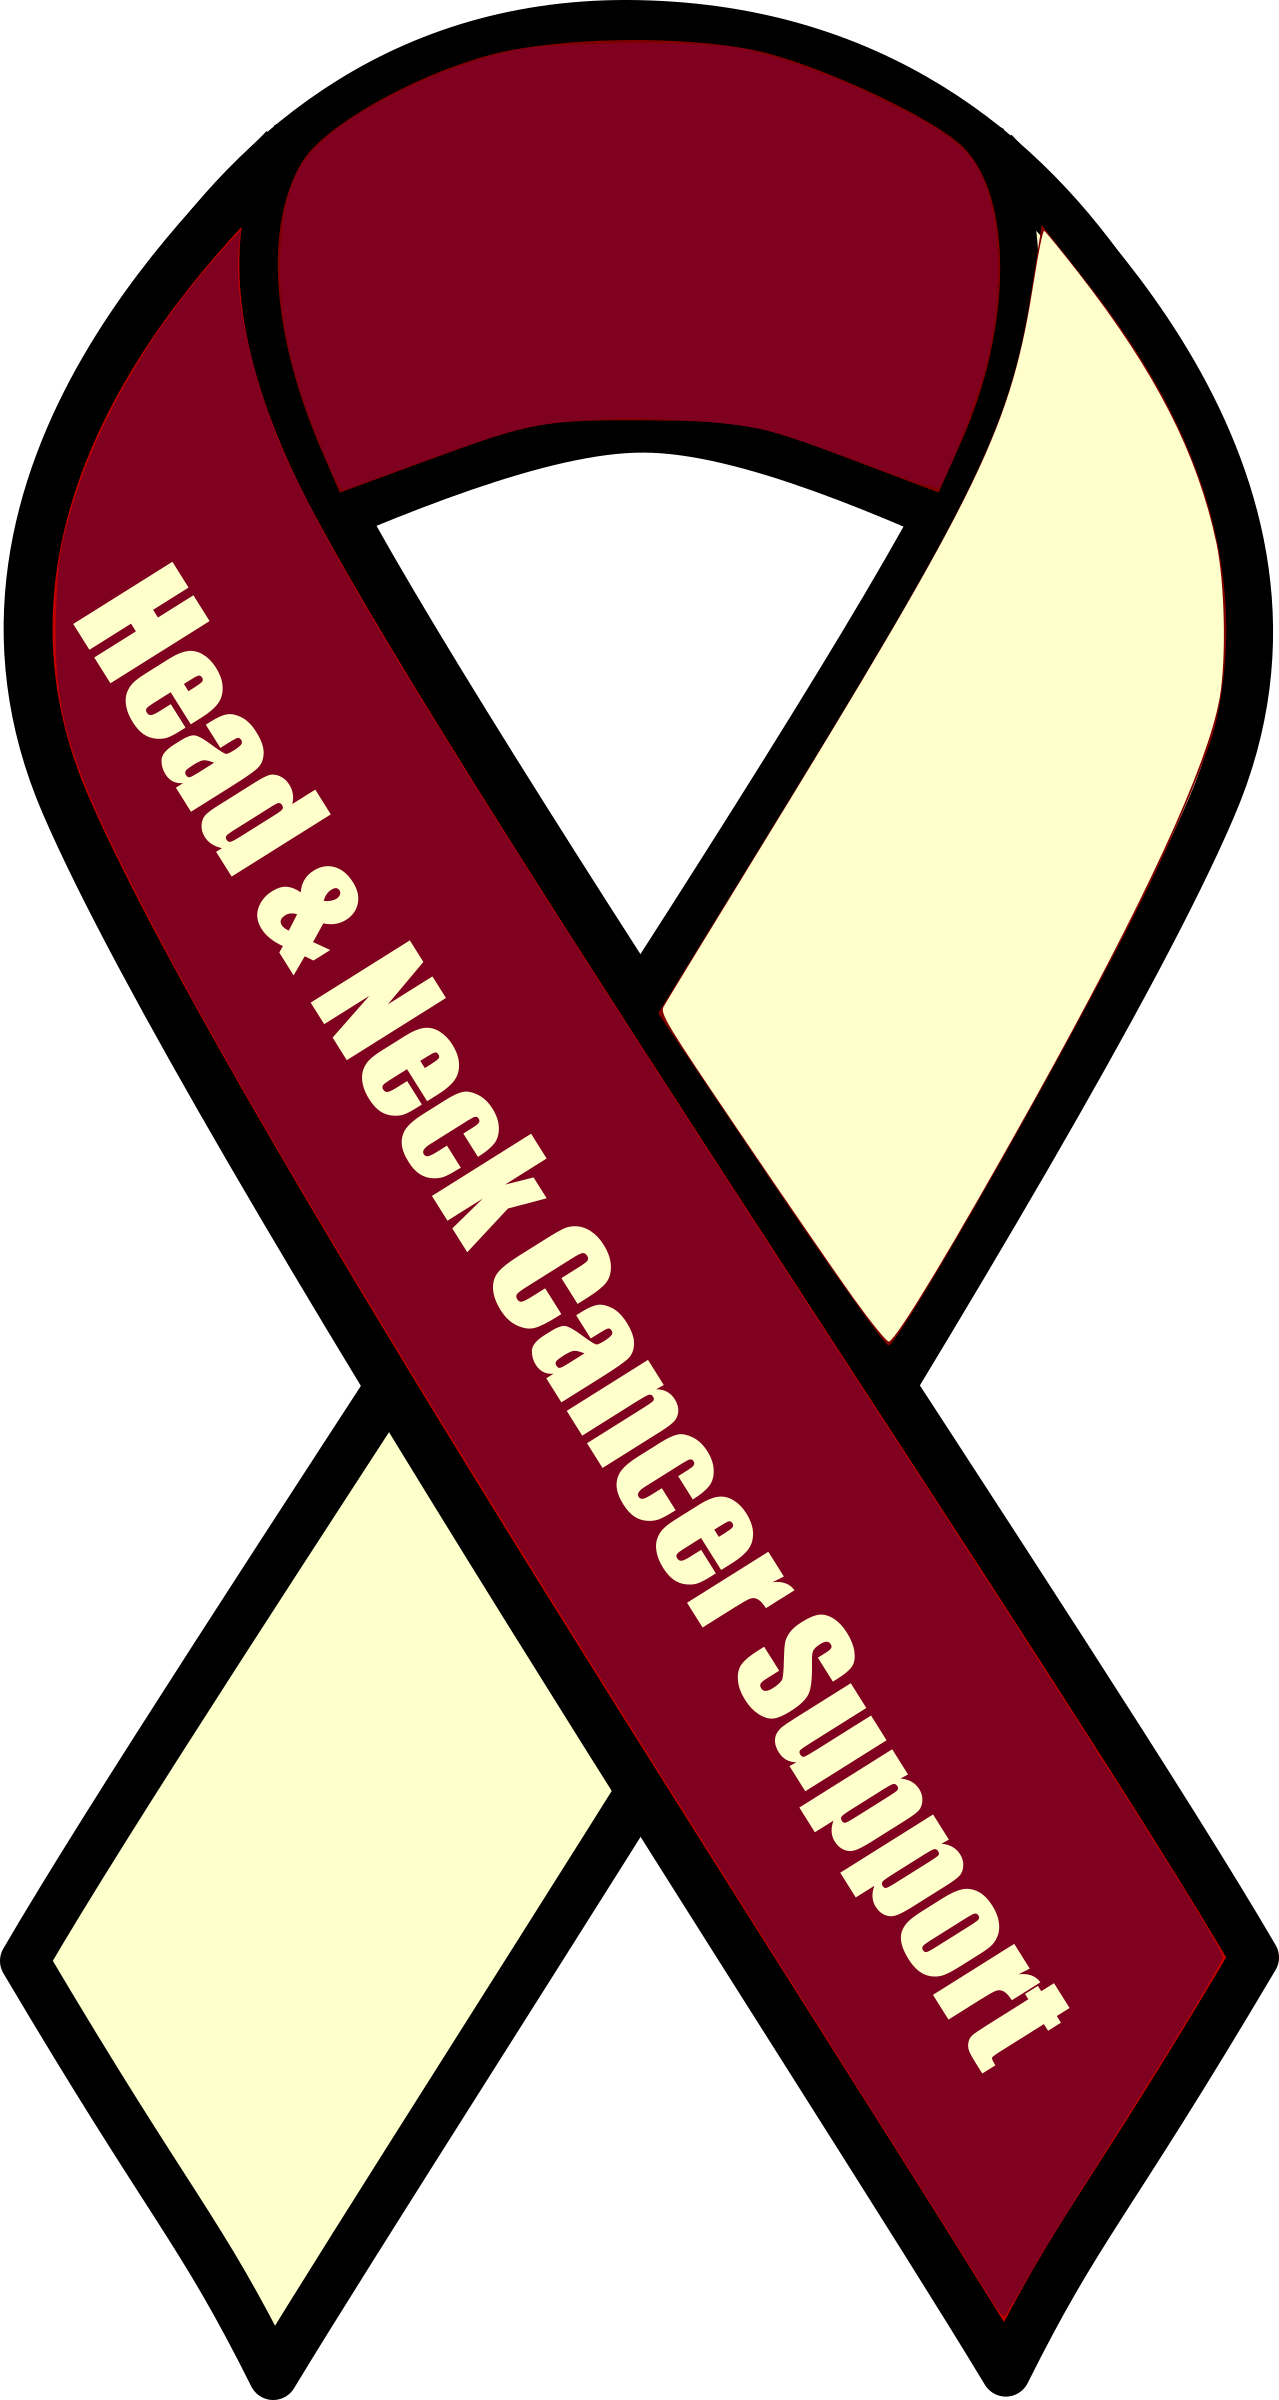 Head and Neck Cancer Support by olwen